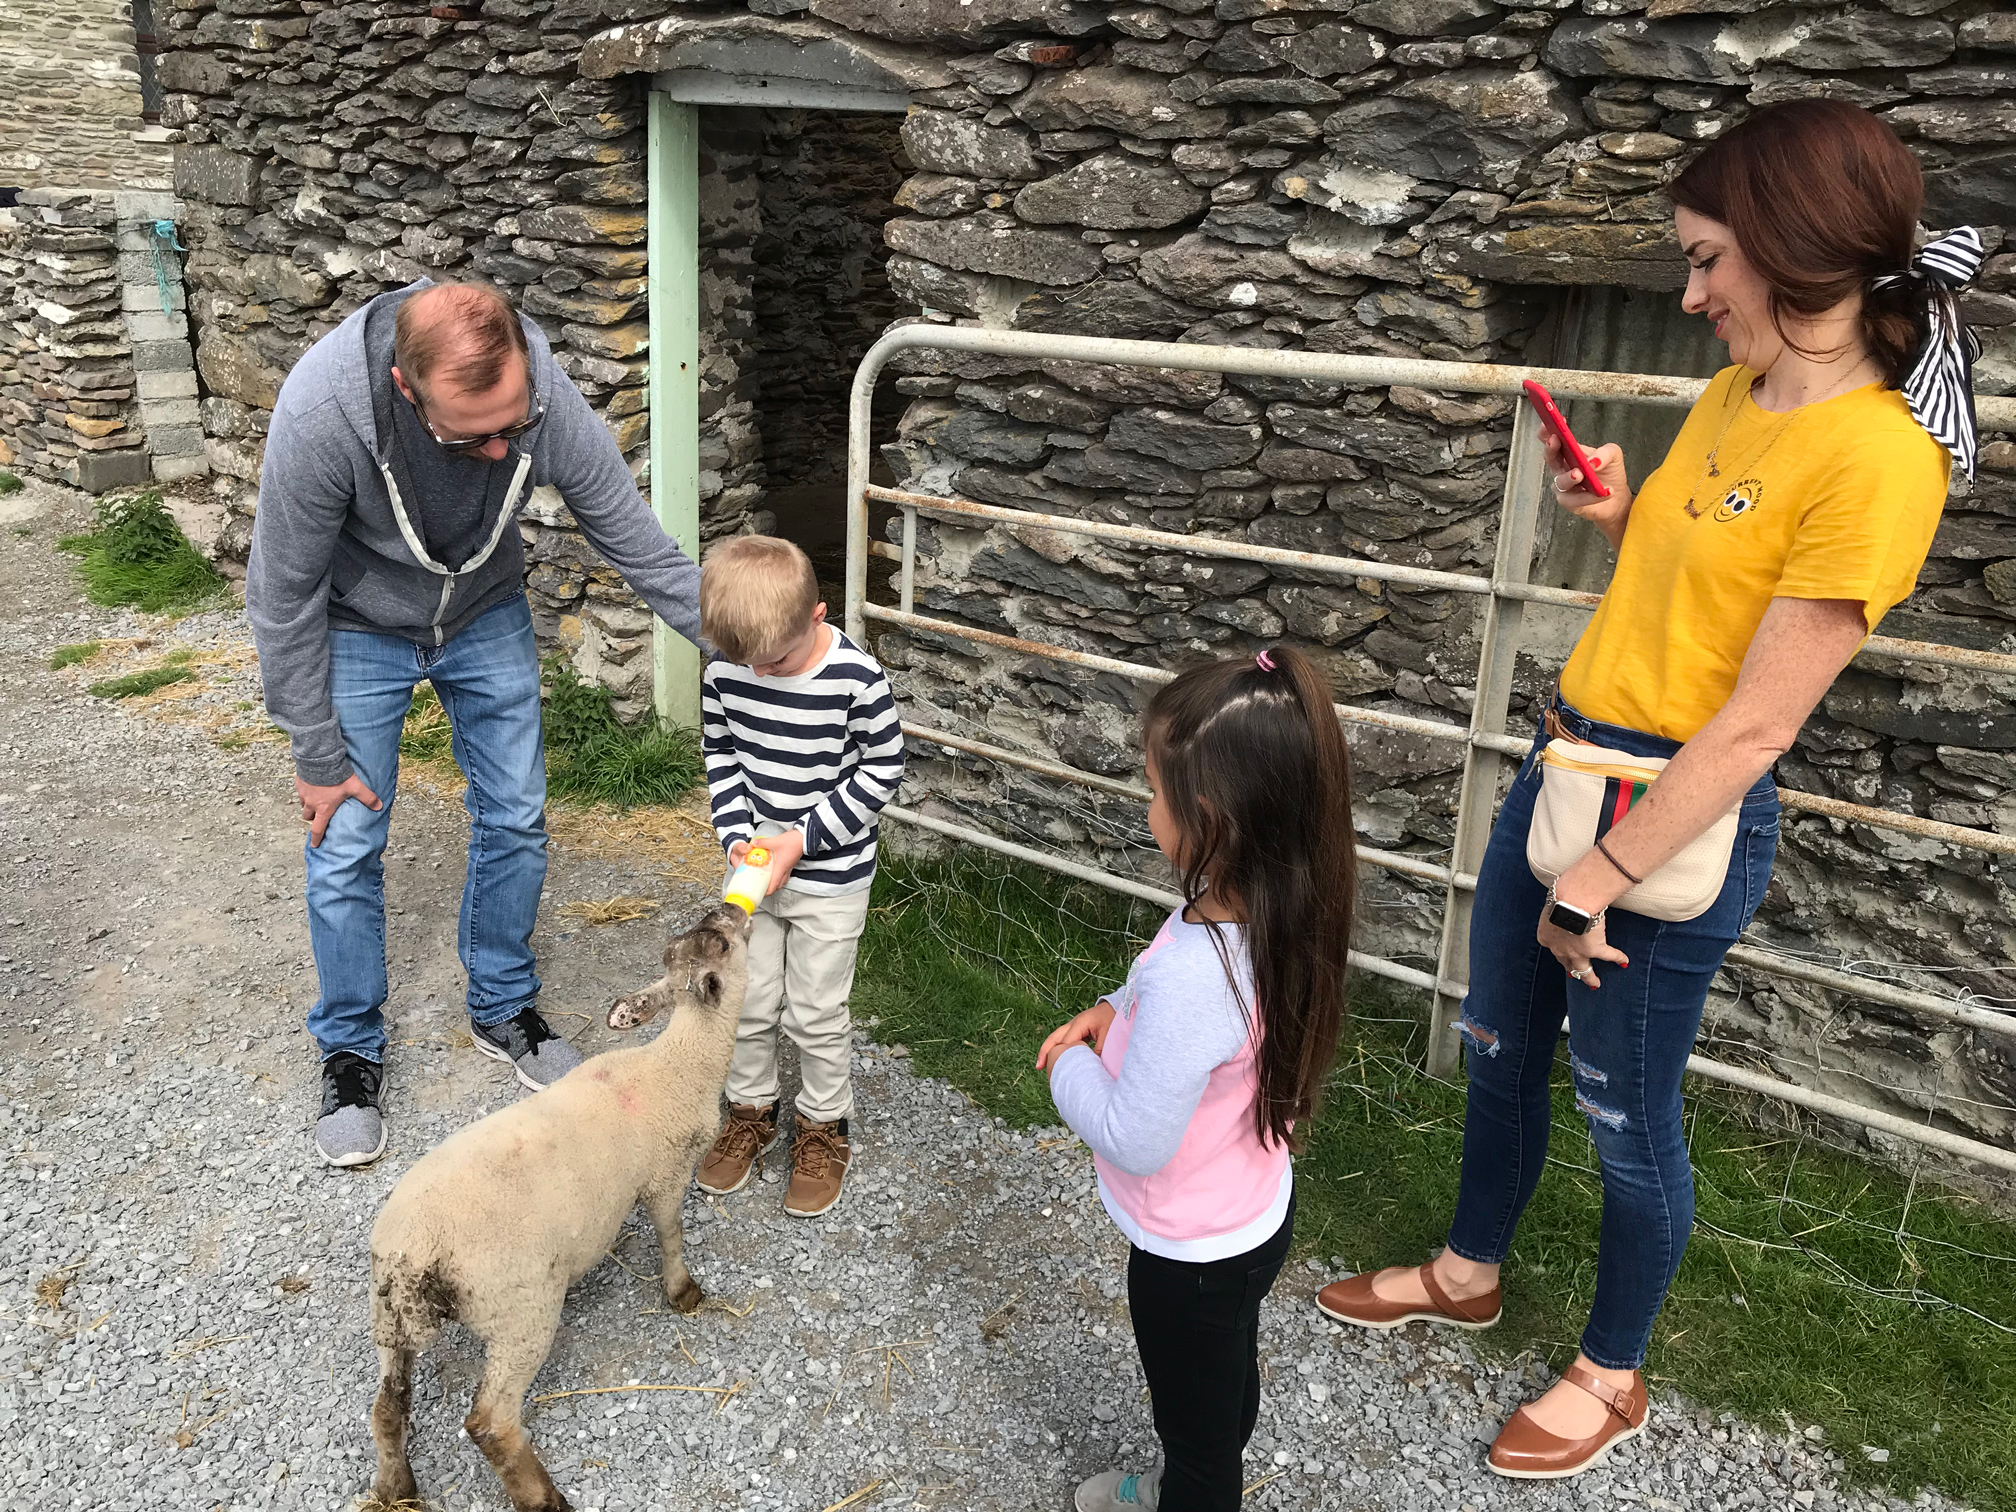 A boy feeds a baby lamb from a bottle as his father and sister look on. Always one of the most popular activities on our Wild Atlantic Essential Ireland Tours